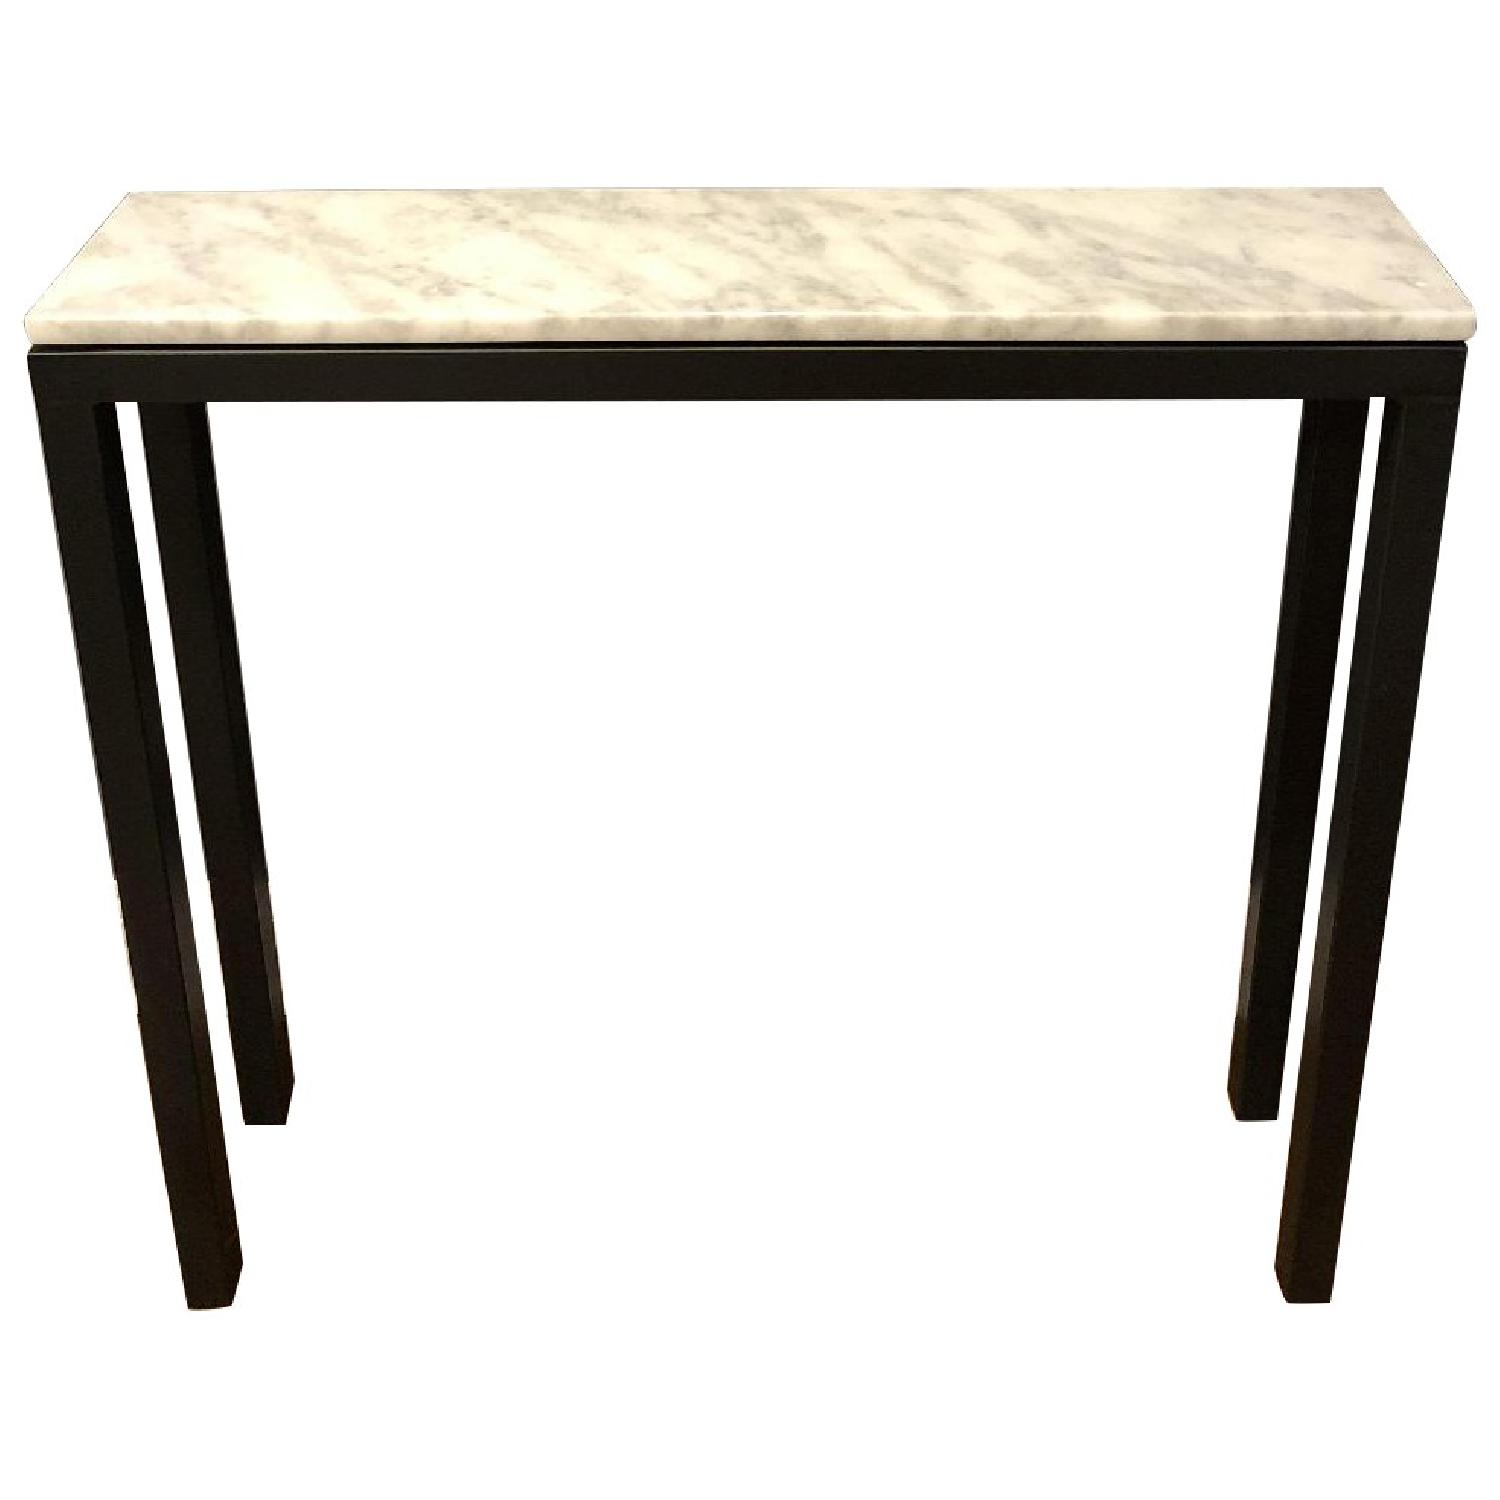 Room & Board Marble Top Console Table - image-0